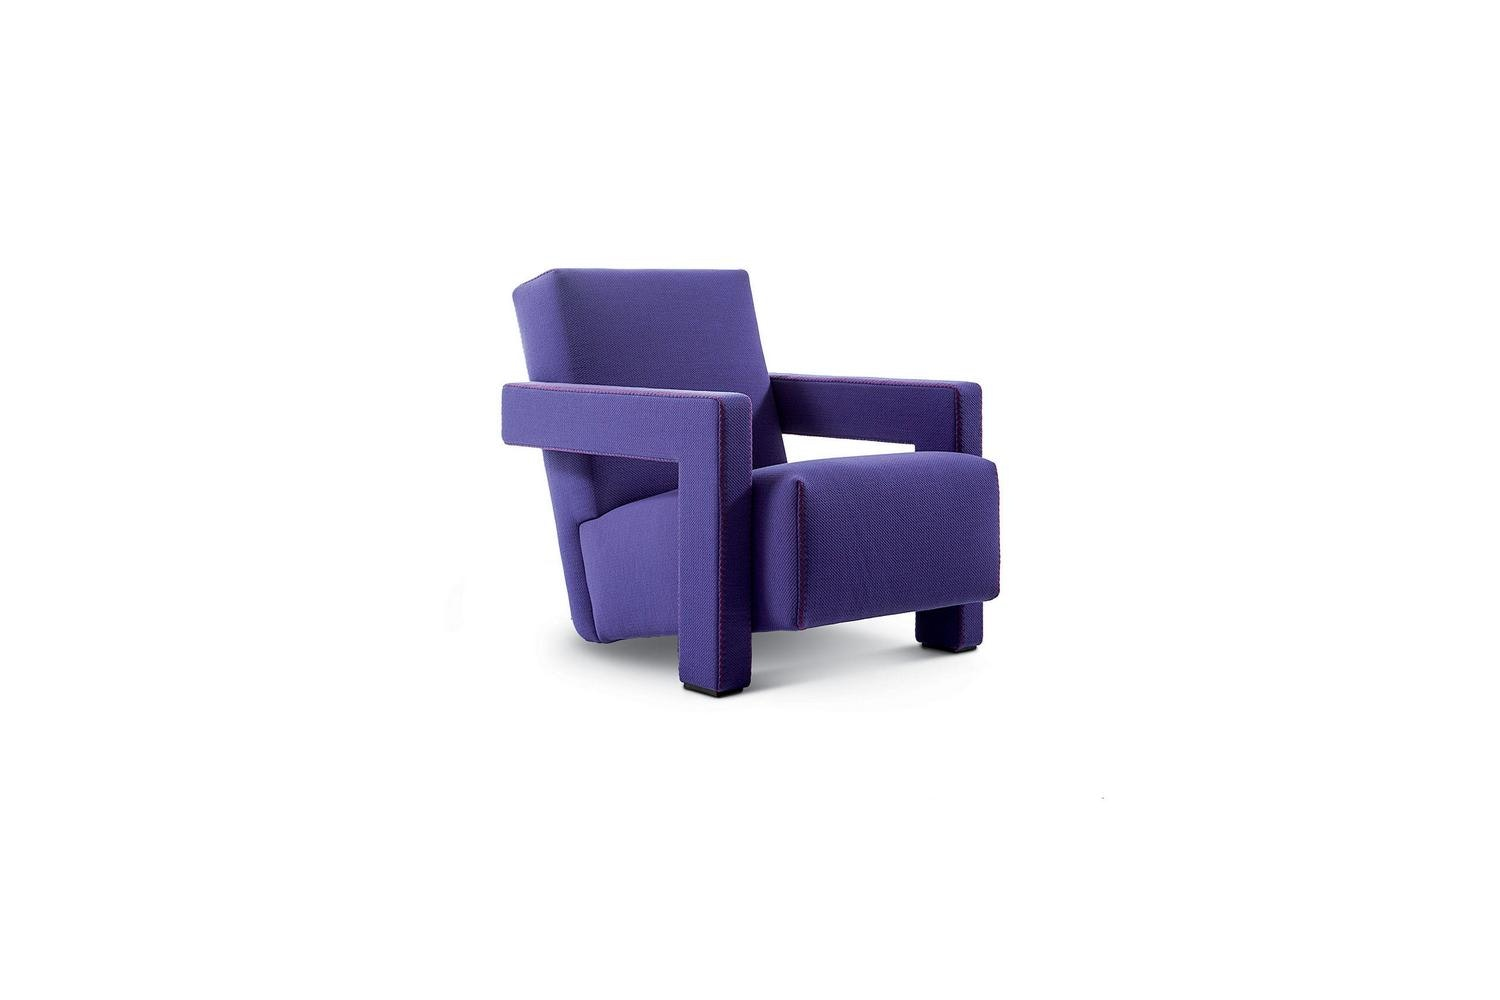 637 Utrecht Armchair by Gerrit Thomas Rietveld for Cassina